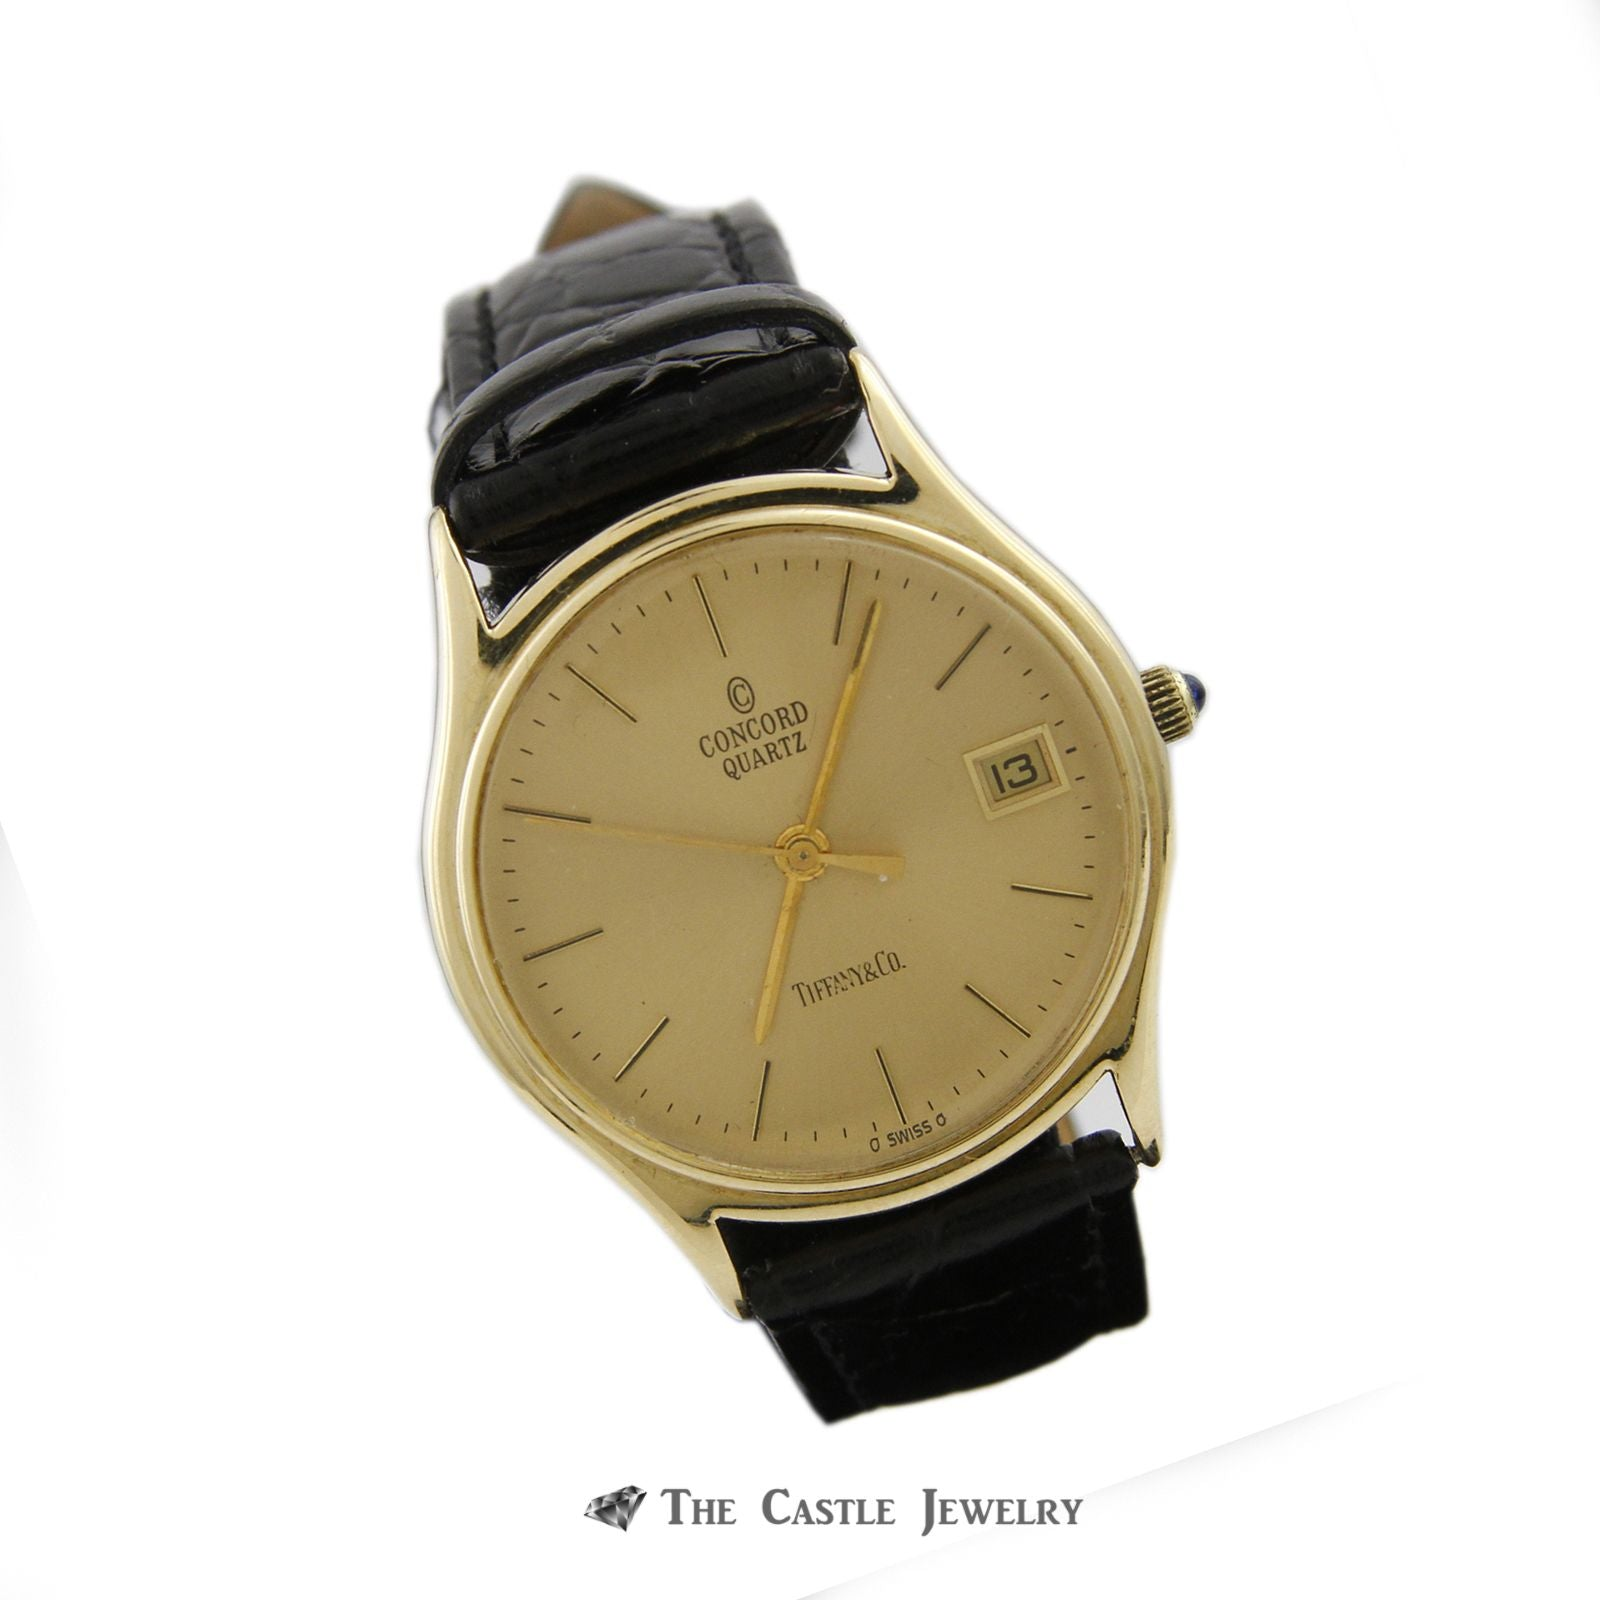 "Tiffany & Co. ""Concord"" Quartz Watch w/ Black Leather Band w/ 14k Yellow Cold Case & Buckle-2"